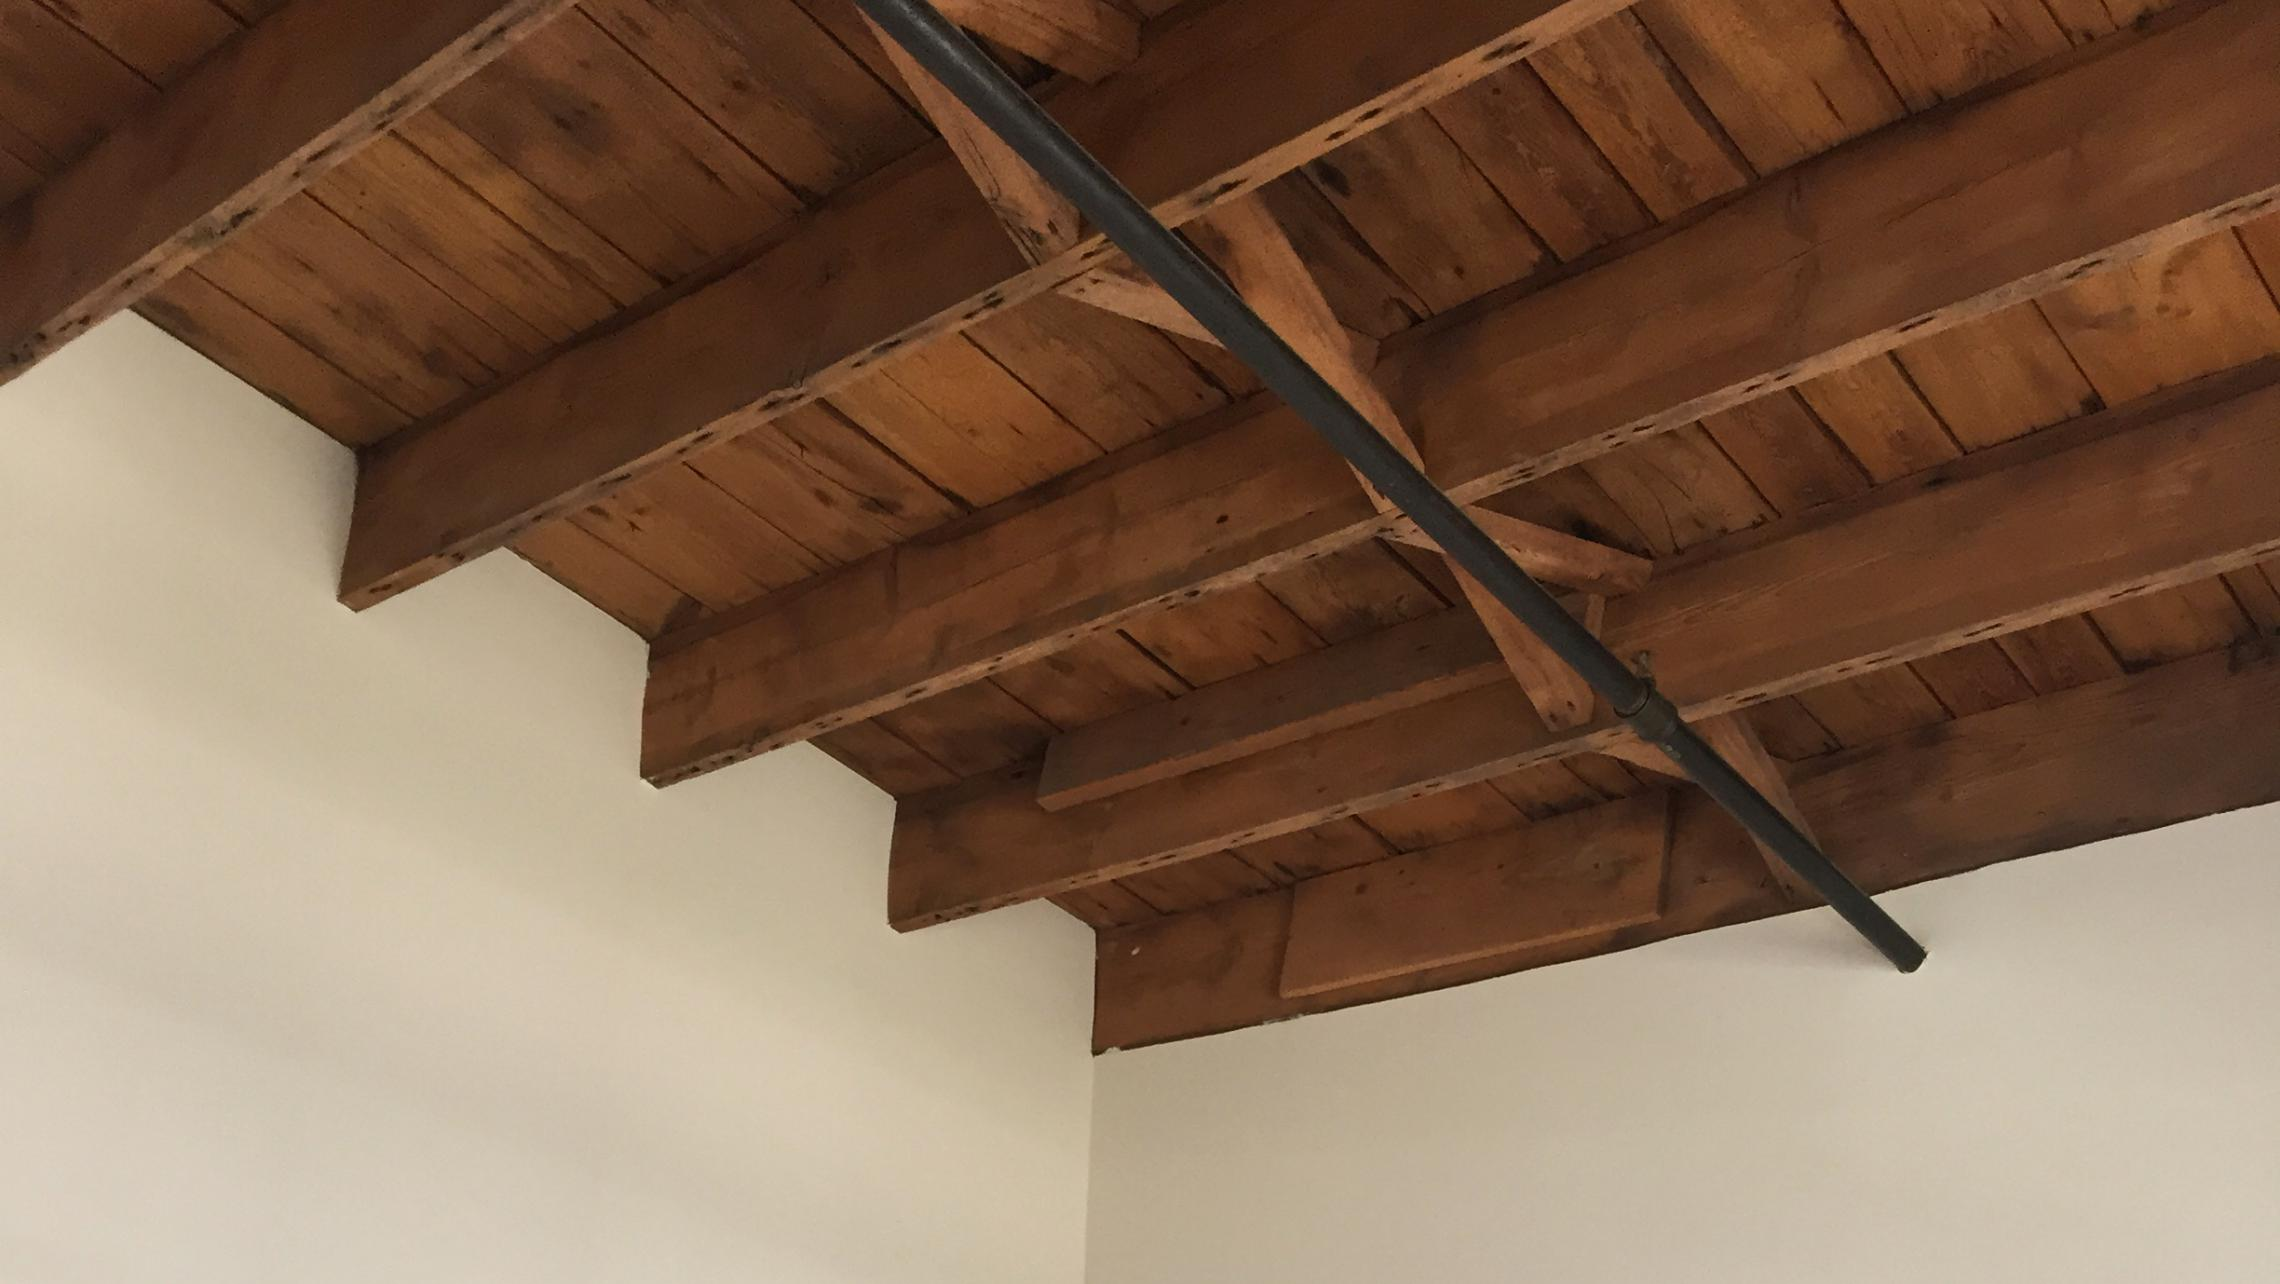 ULI Tobacco Lofts - E309 - Ceiling with Exposed Wood Beams